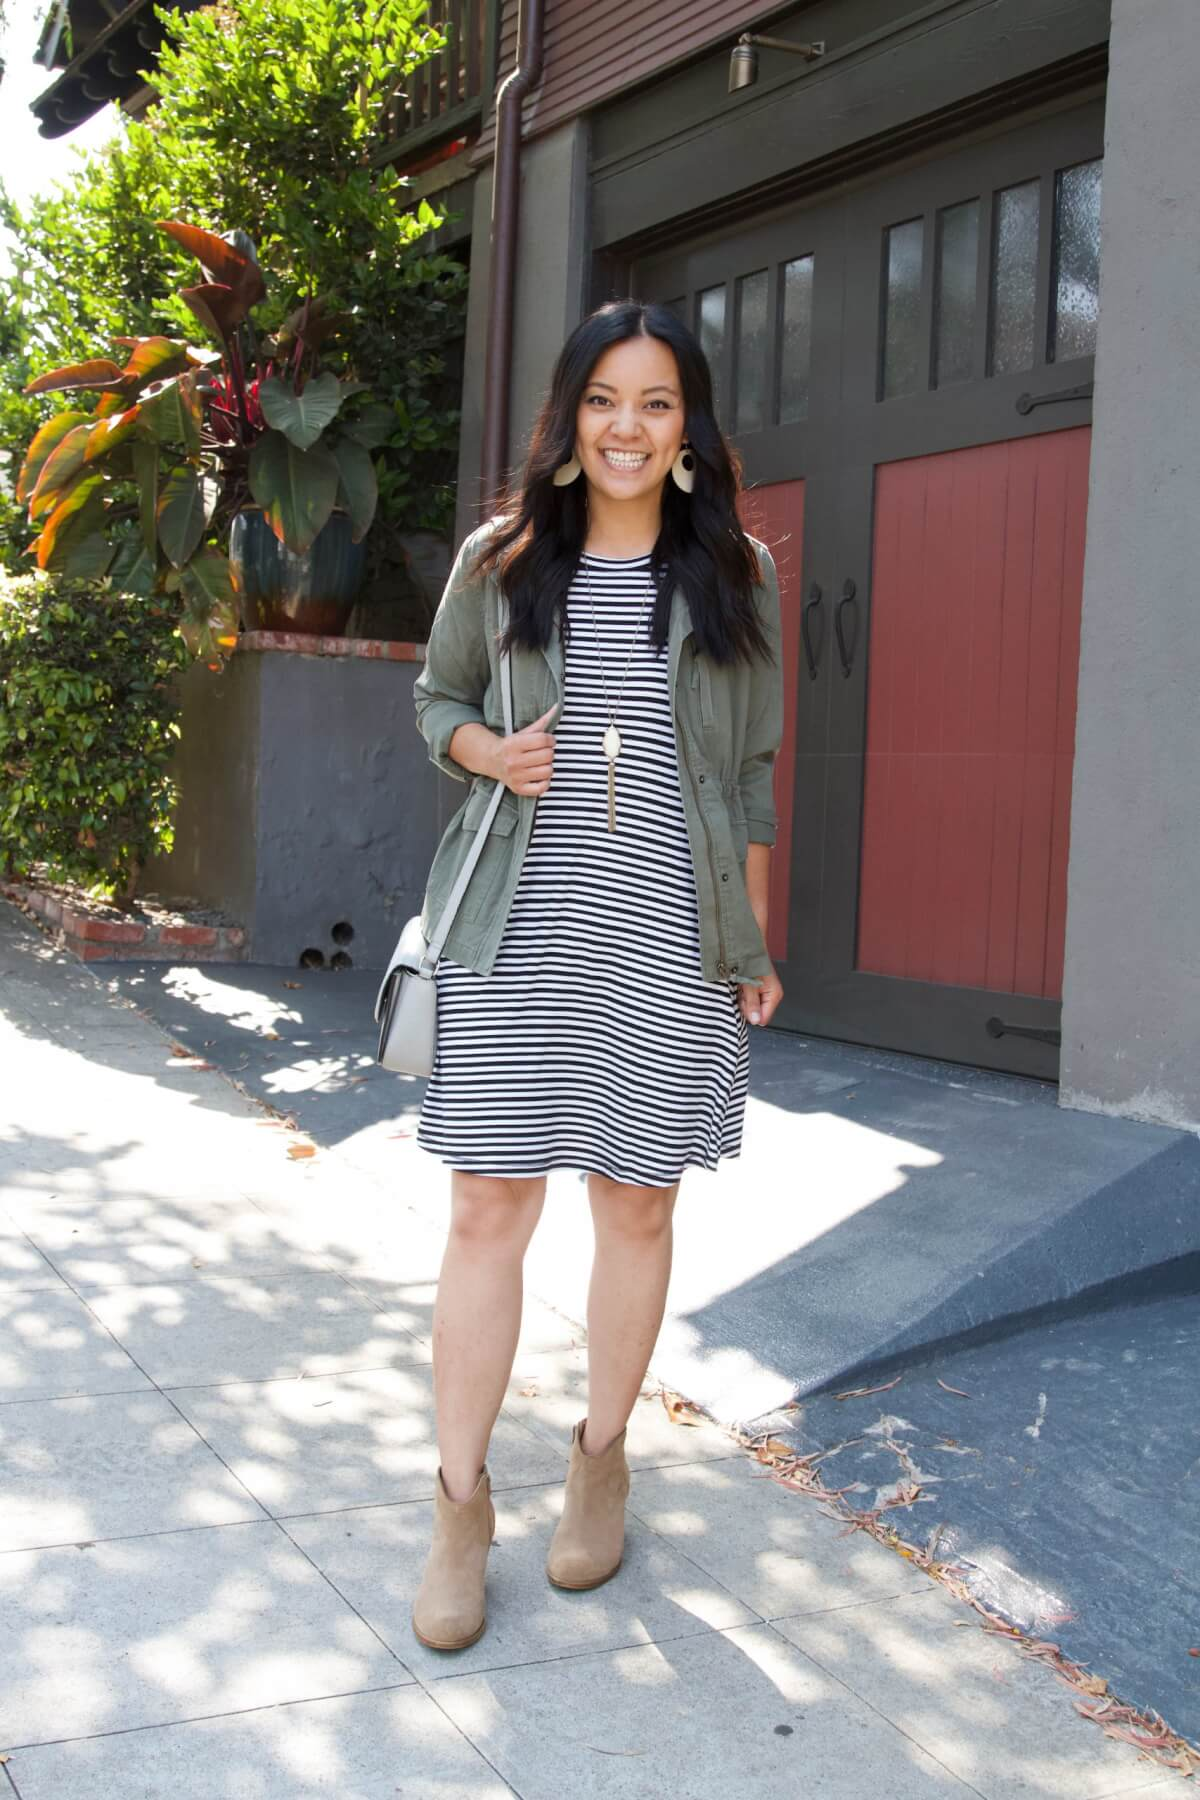 Nicer Casual Outfit for Summer to Early Fall Transition: black and white striped dress + olive utility jacket + taupe suede booties + white earrings + pendant necklace + gray crossbody purse